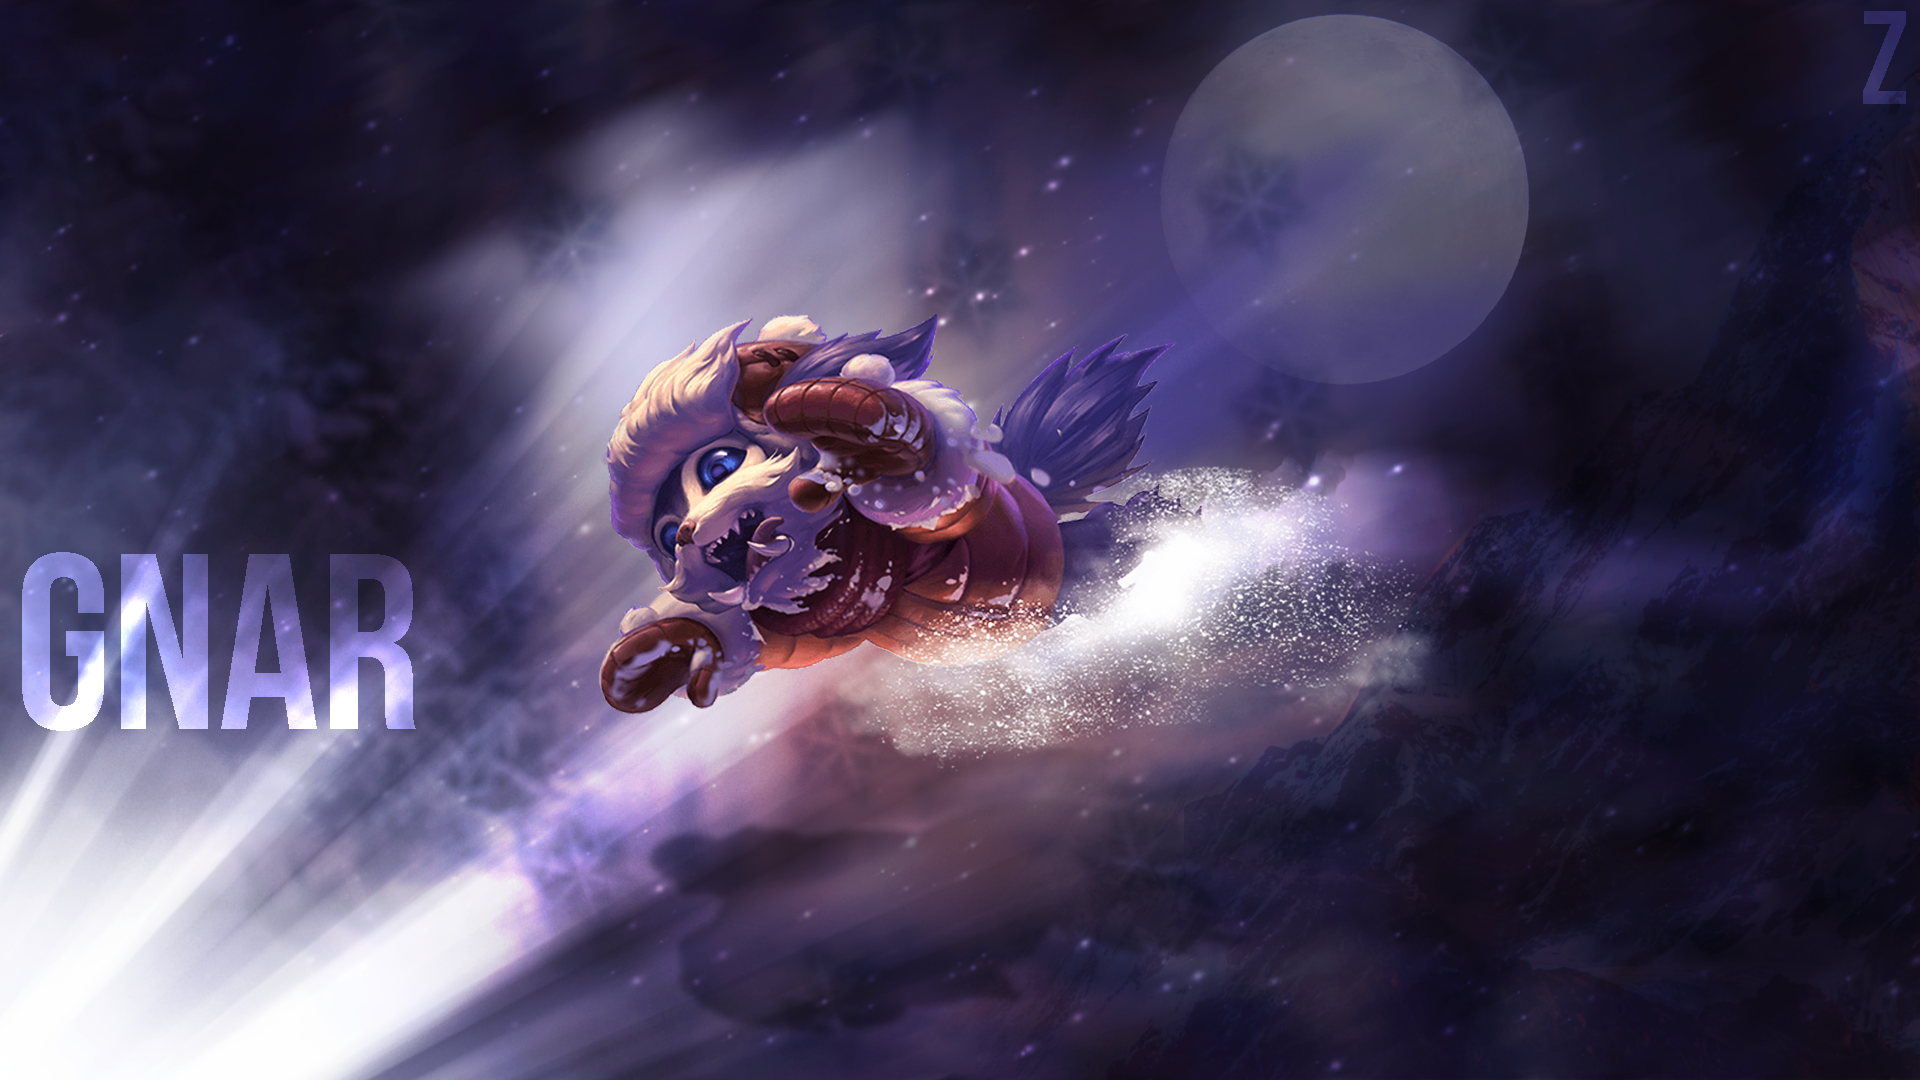 Snow Day Gnar wallpaper